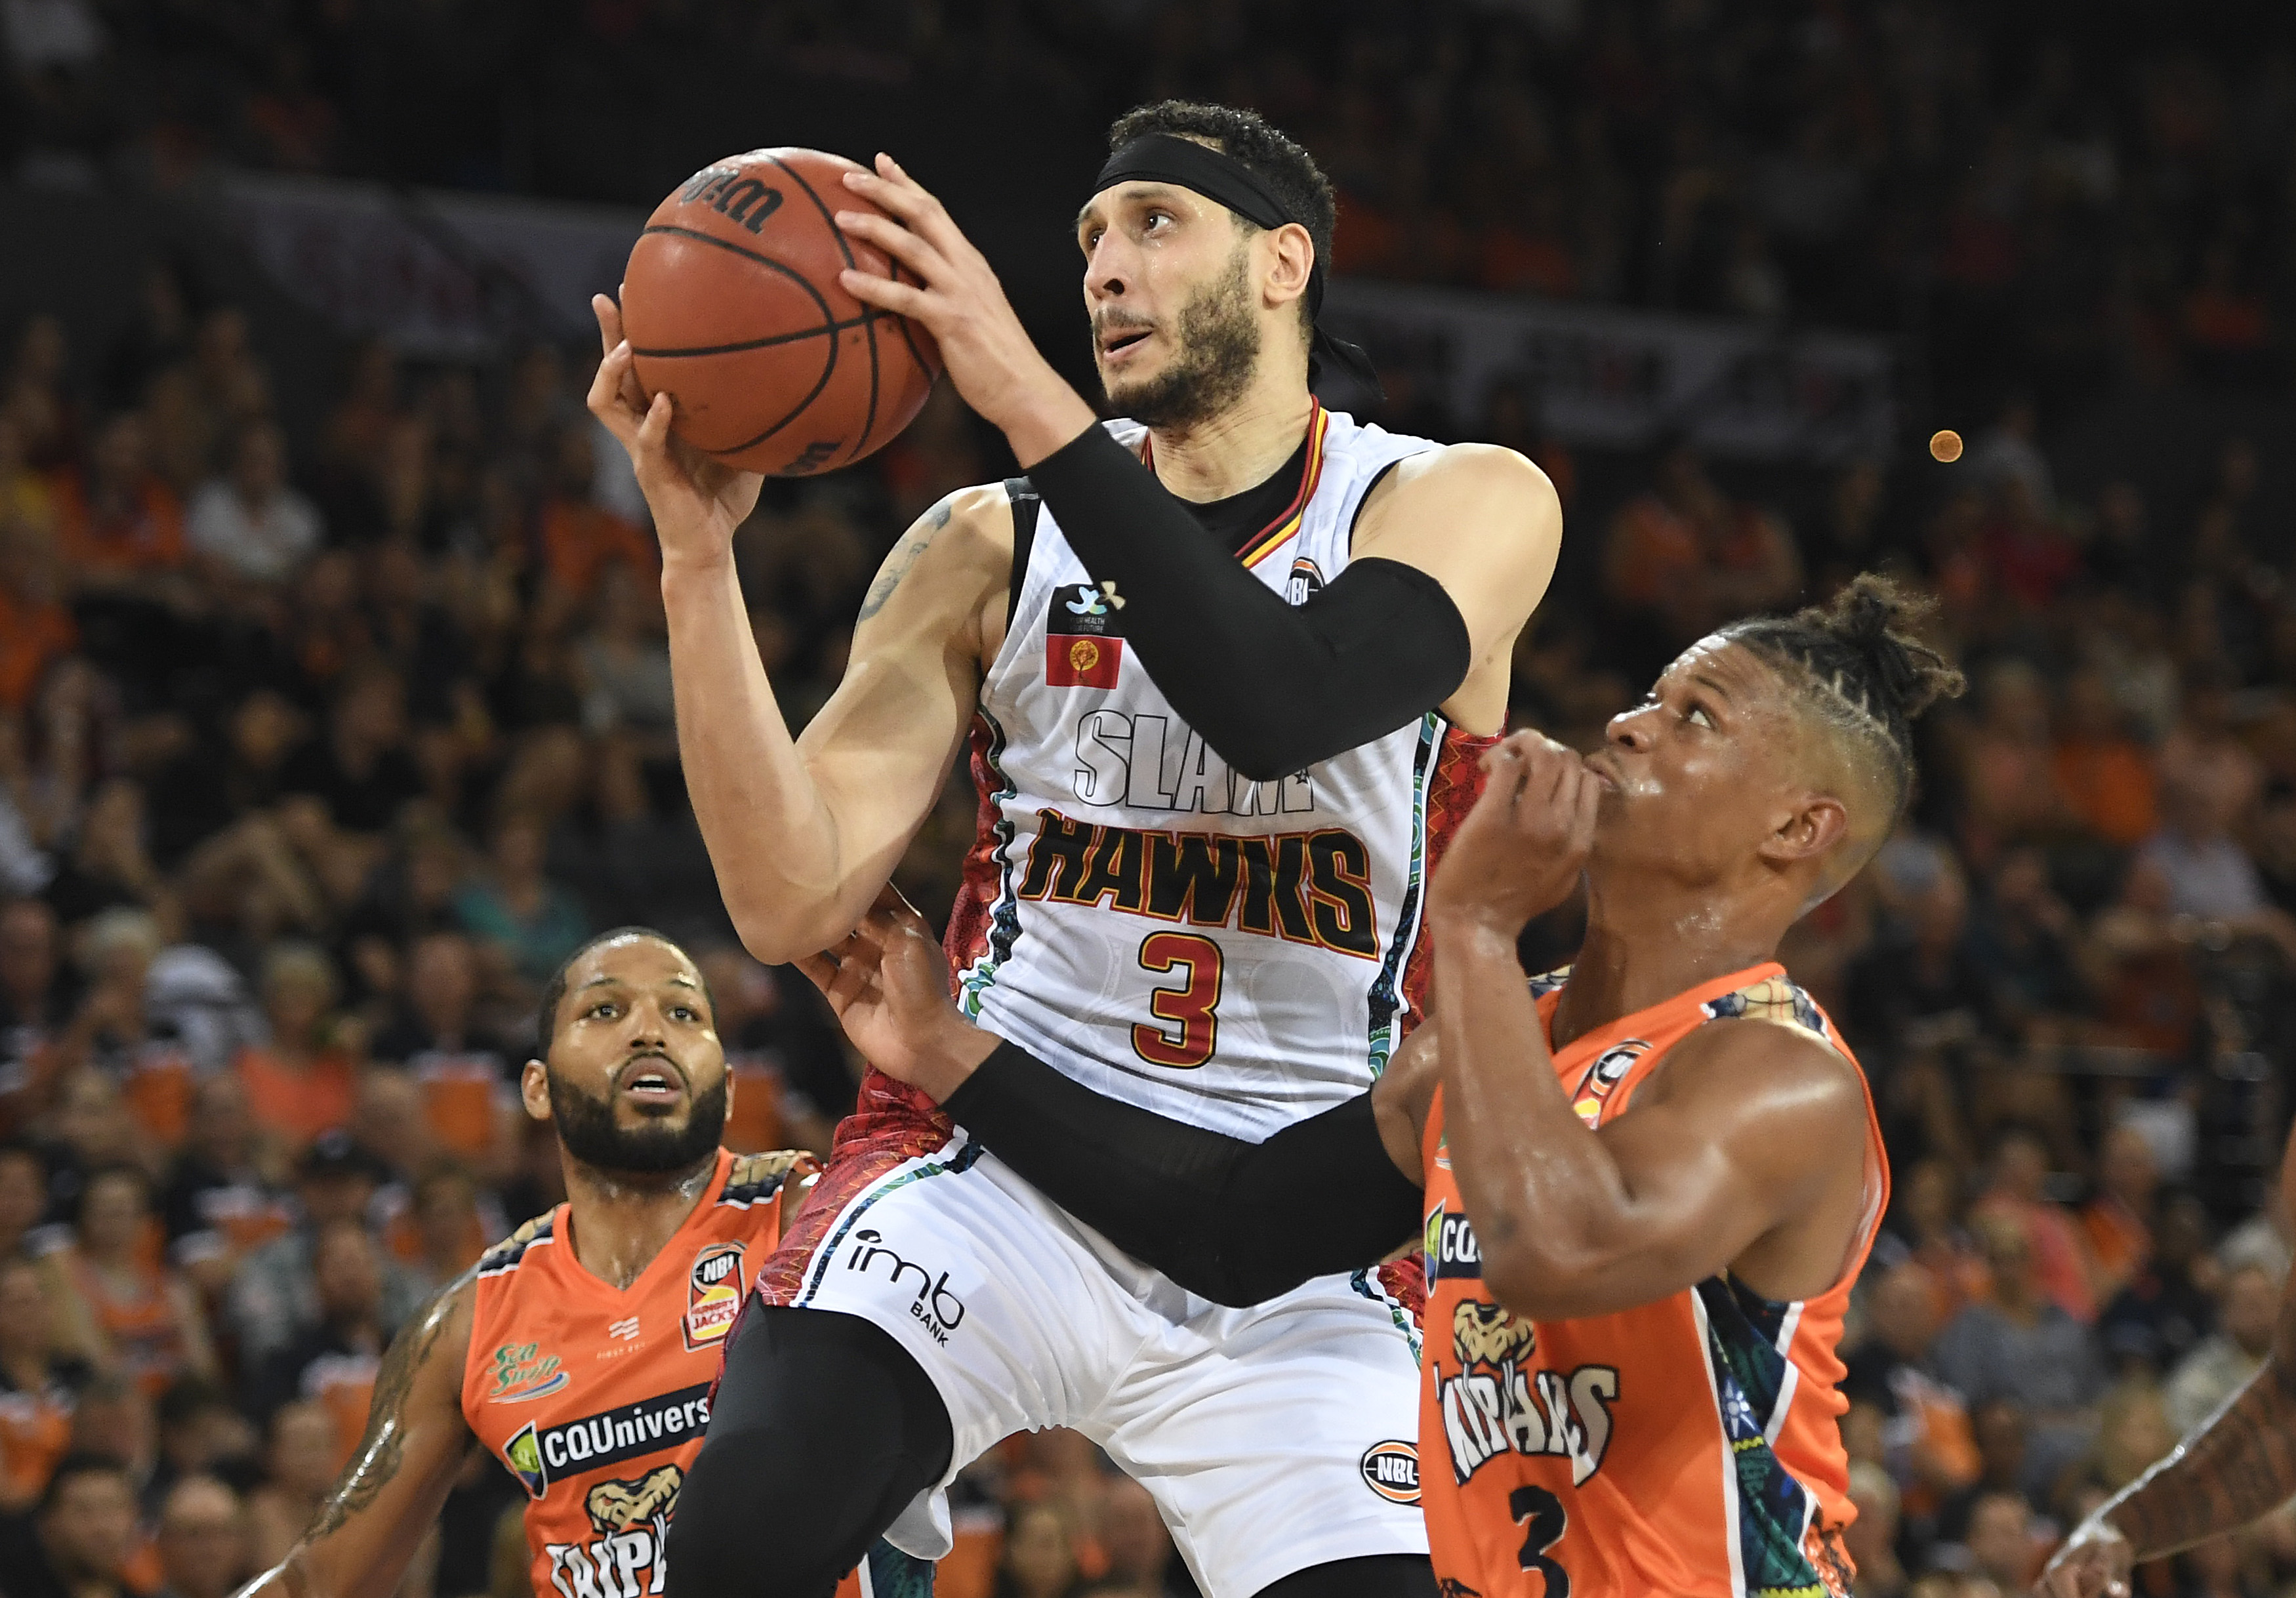 CAIRNS, AUSTRALIA - JANUARY 31: Josh Boone of the Hawks drives to the basket during the round 18 NBL match between the Cairns Taipans and the Illawarra Hawks at the Cairns Convention Centre on January 31, 2020 in Cairns, Australia.